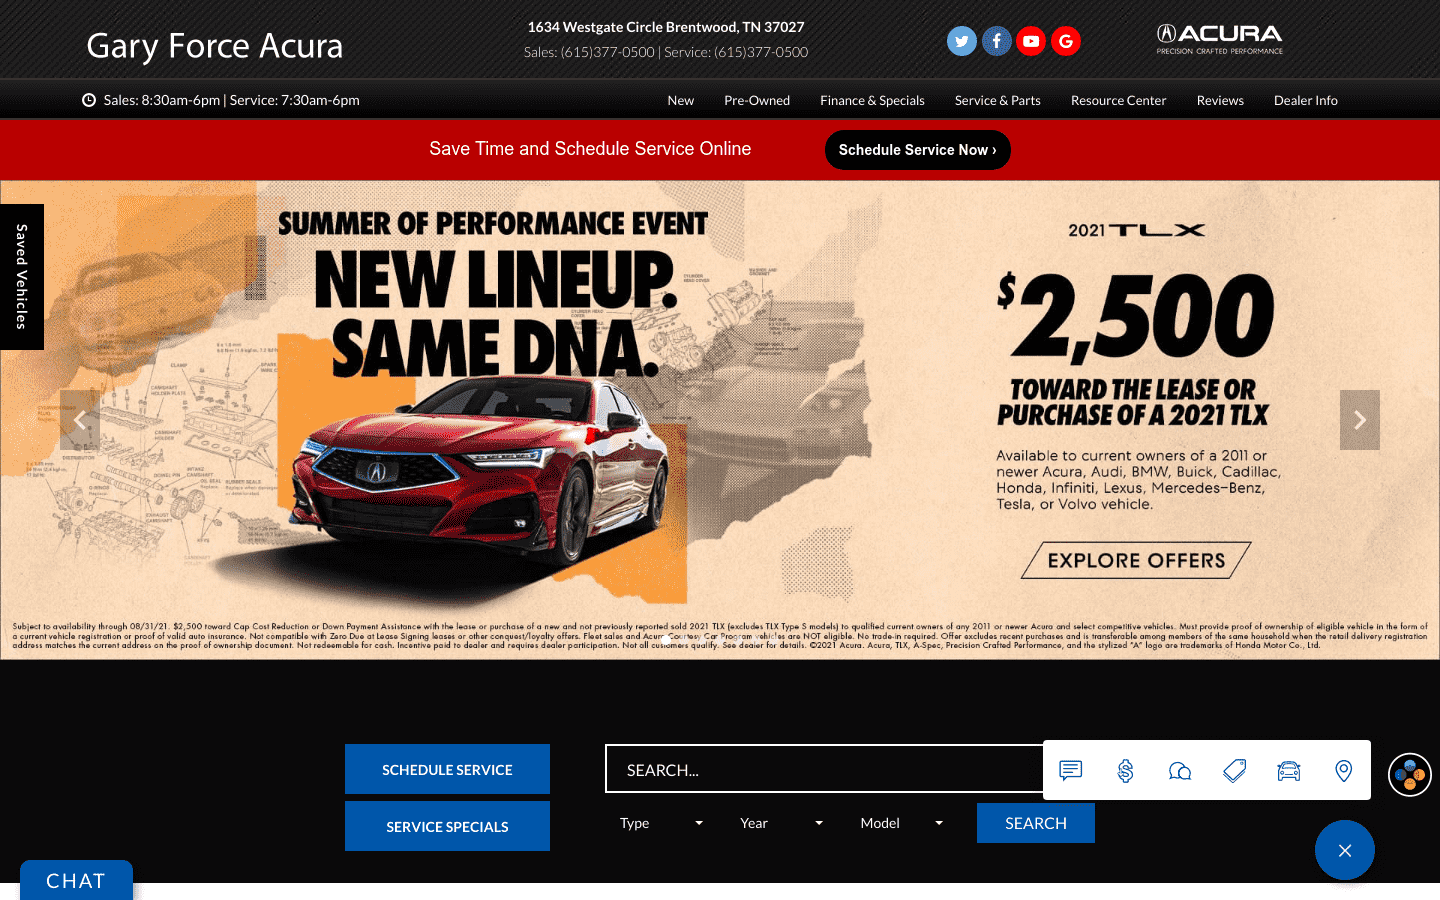 Gary Force Acura reviews and complaints